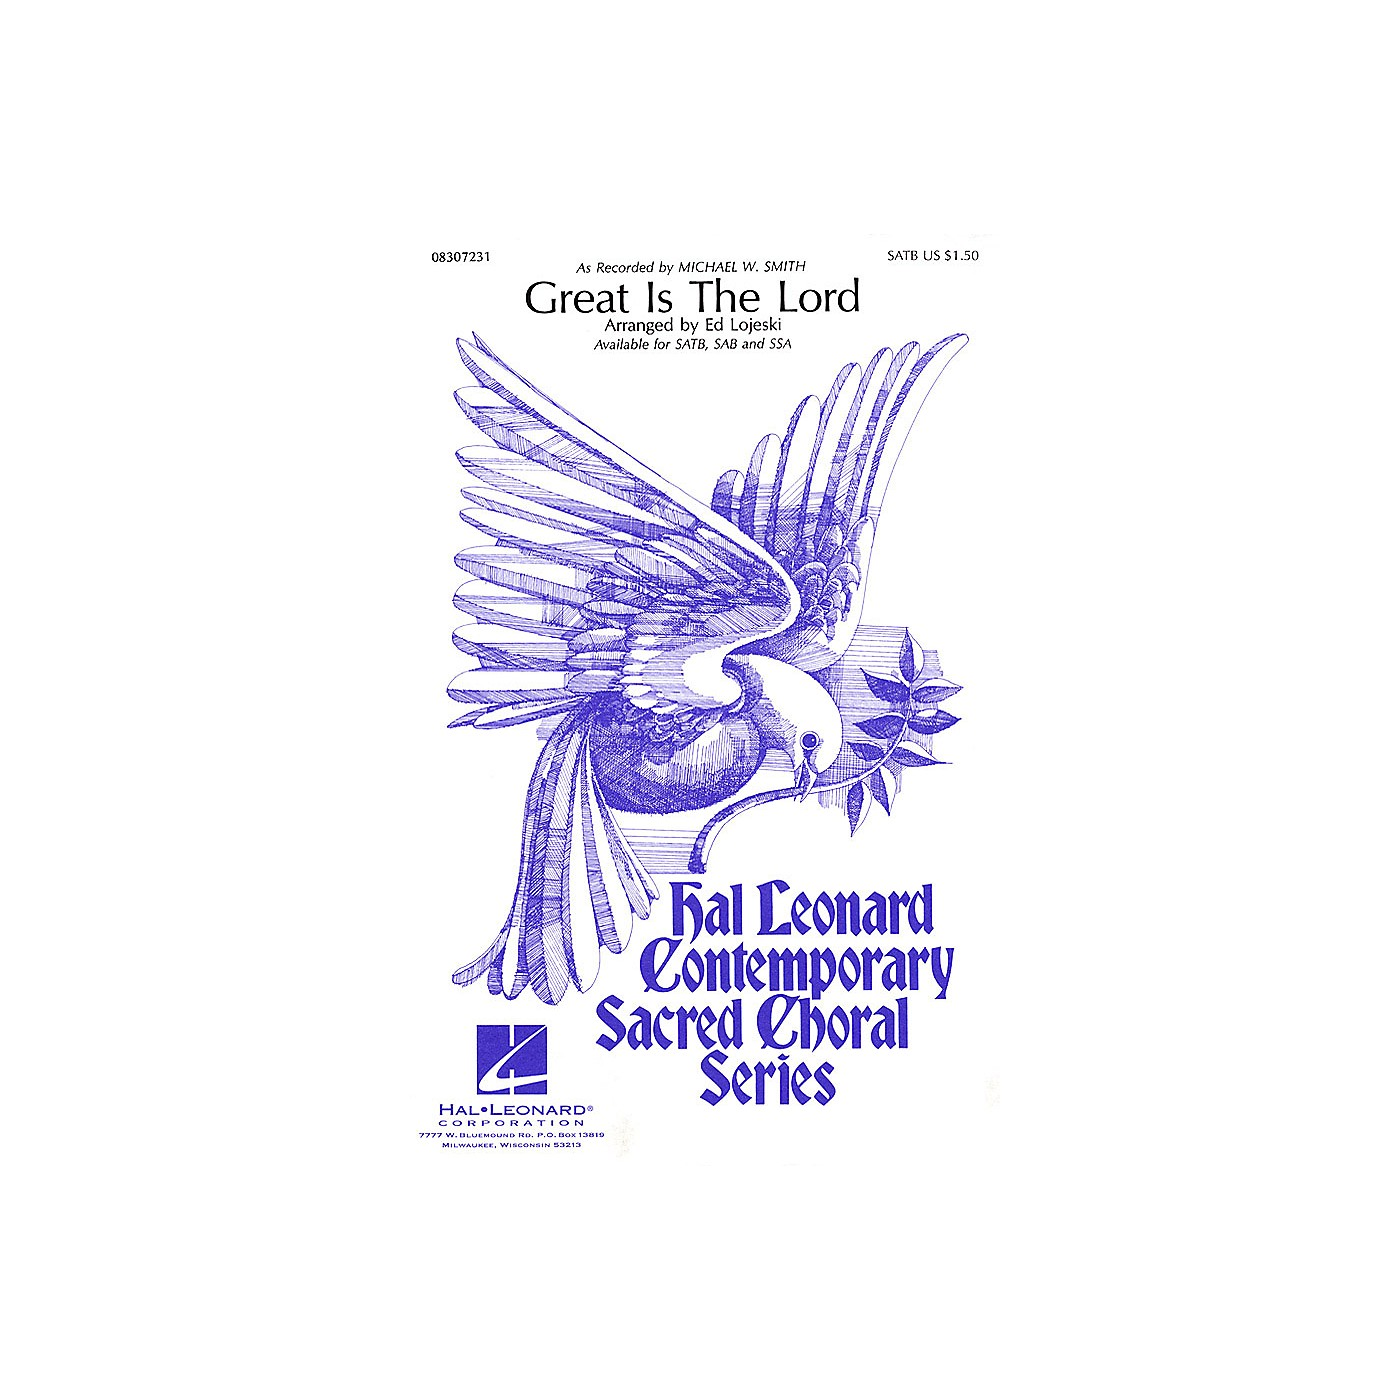 Hal Leonard Great Is the Lord SAB by Michael W. Smith Arranged by Ed Lojeski thumbnail